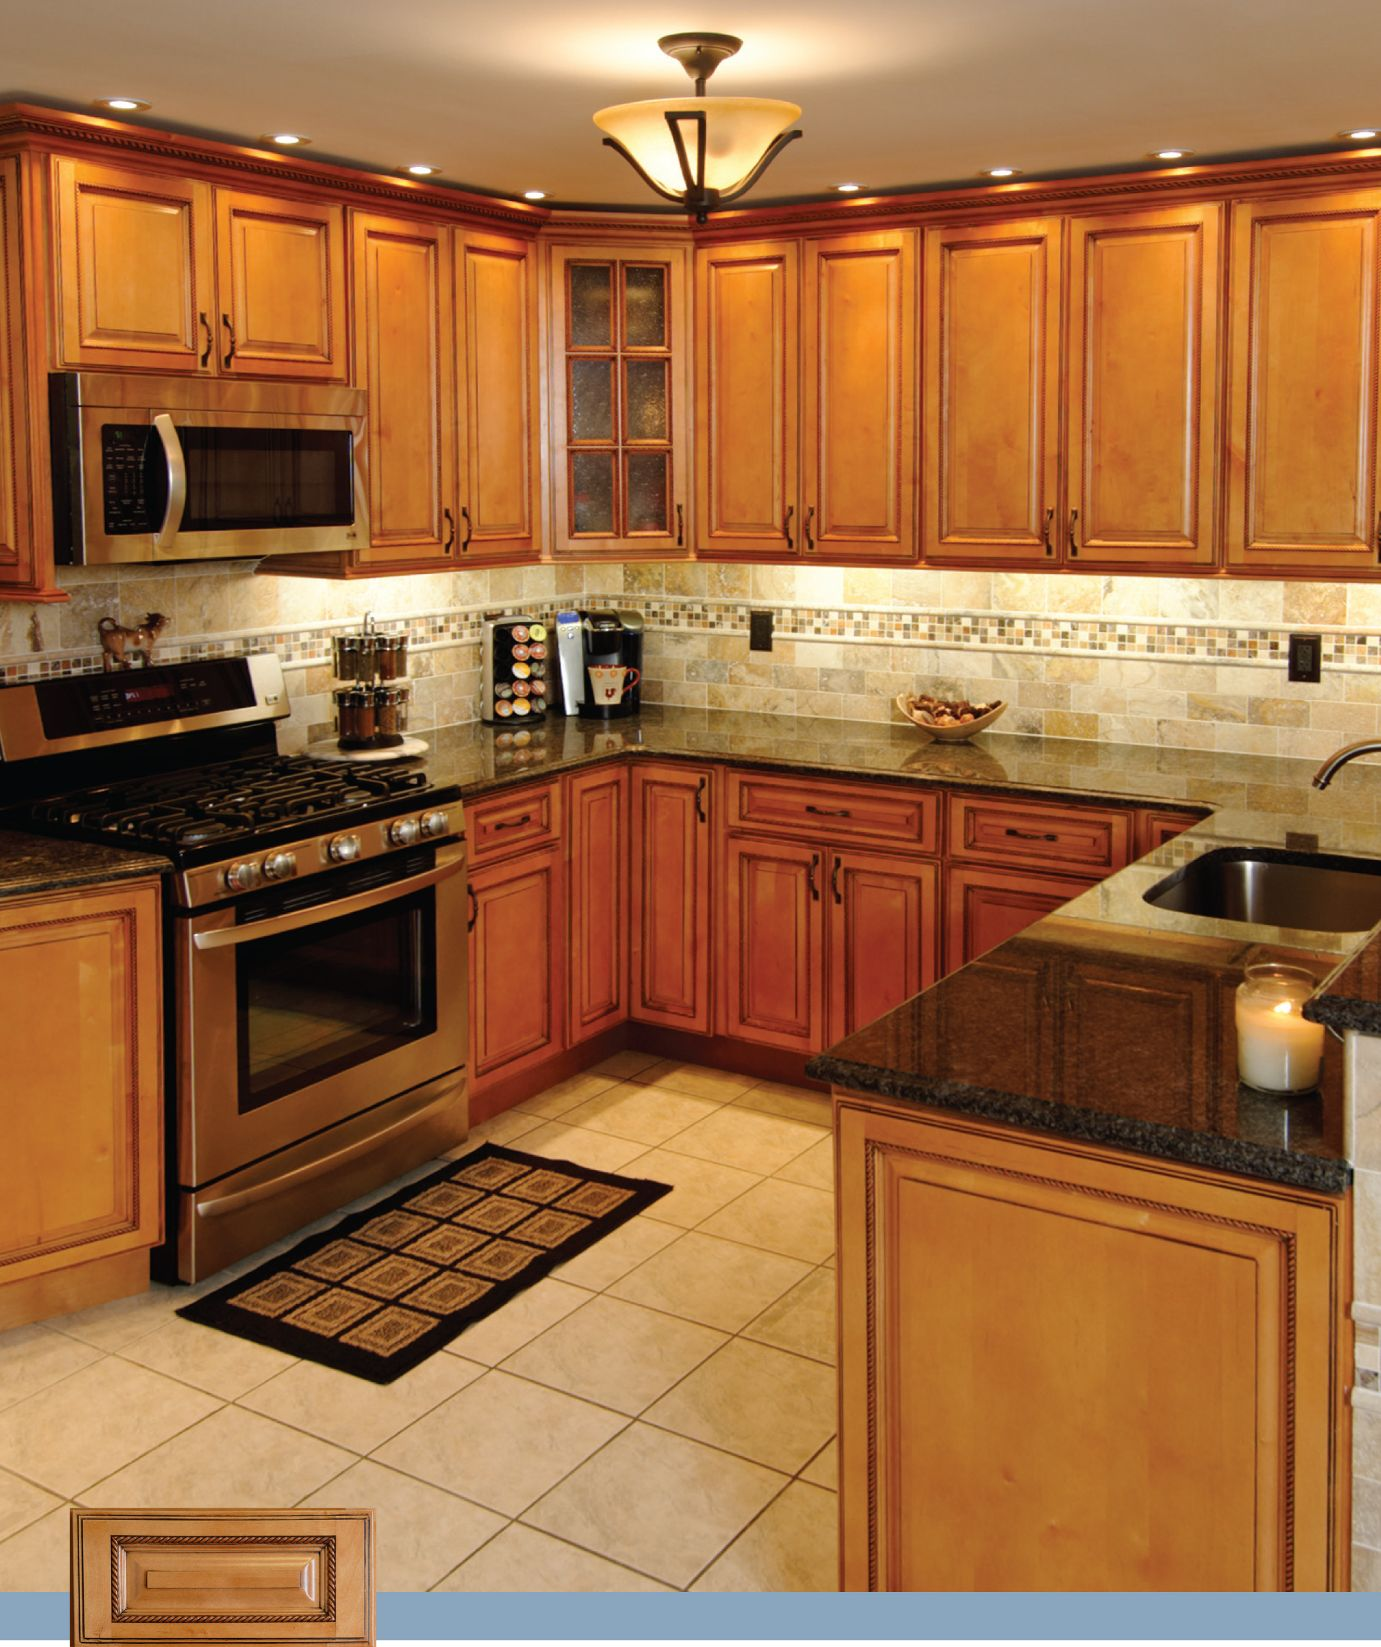 Images Of Black Kitchen Cabinets: RTA Kitchen Cabinet Discounts MAPLE OAK BAMBOO BIRCH